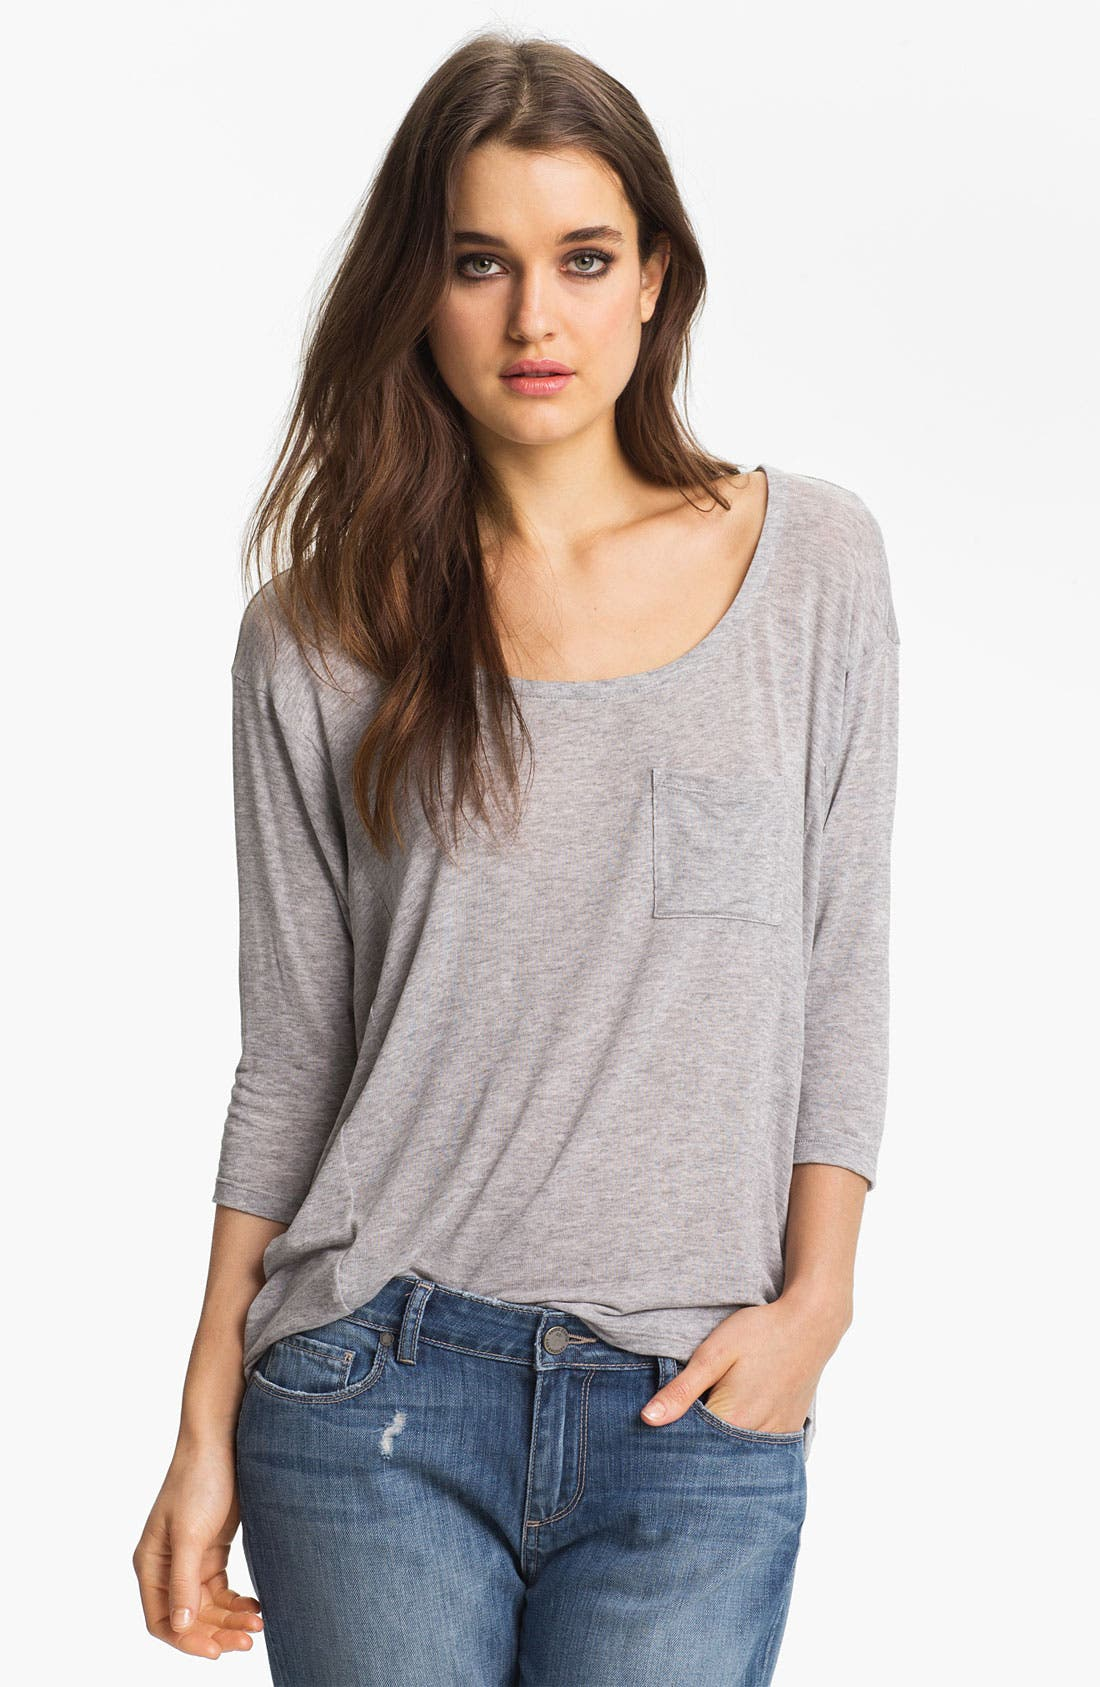 Alternate Image 1 Selected - Splendid Pocket Dolman Top